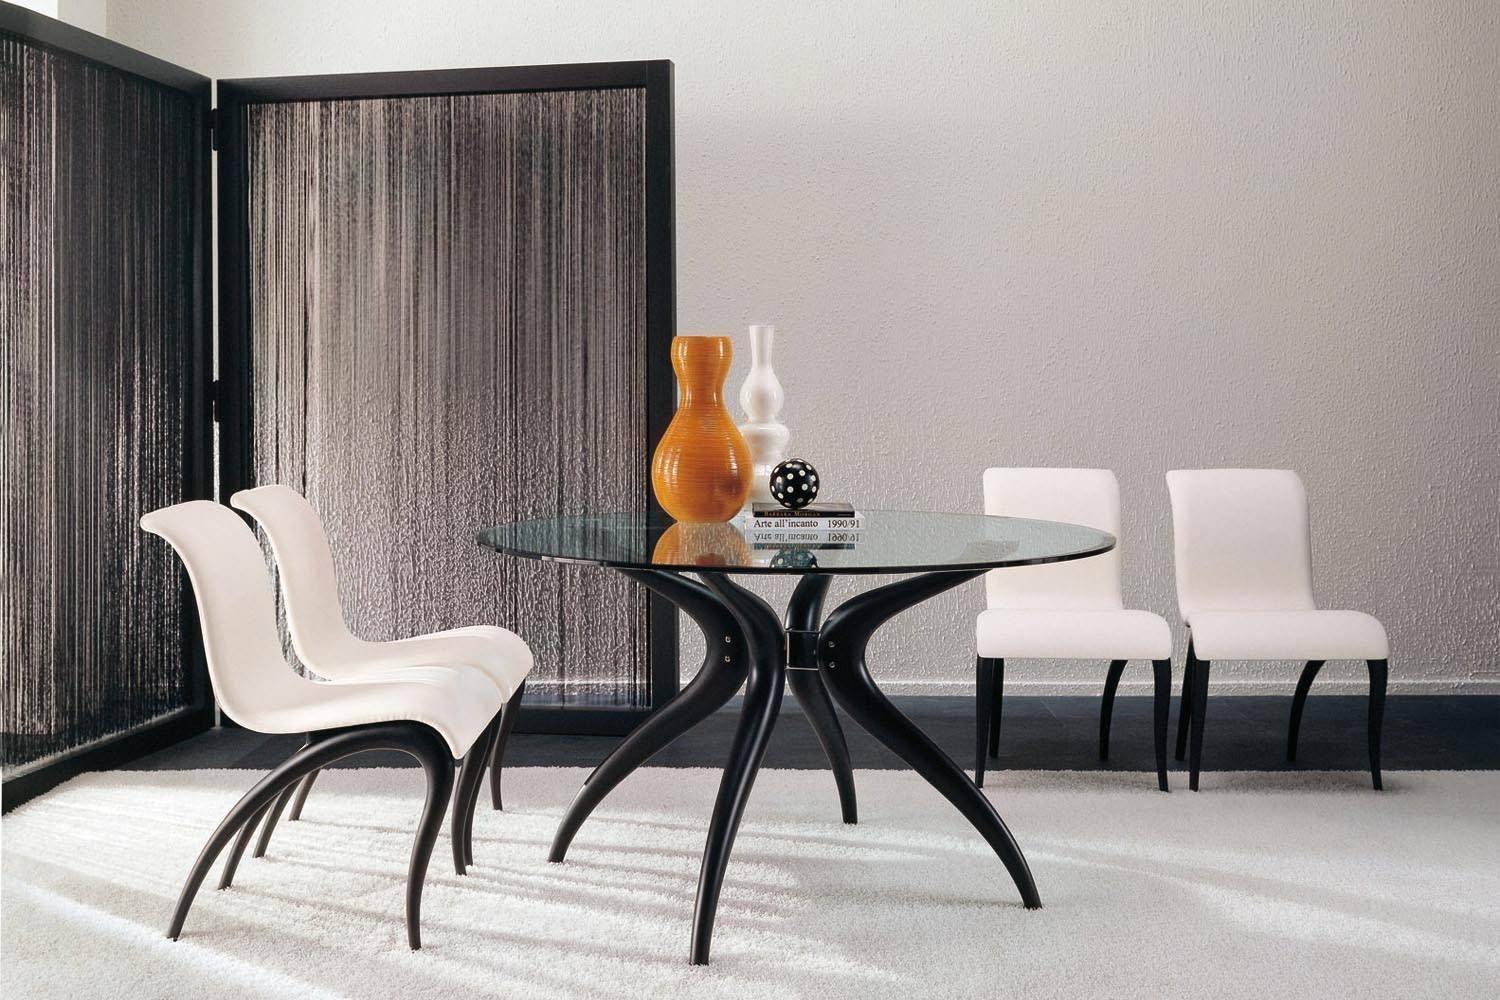 Anxie Chair by M. Marconato - T. Zappa for Porada